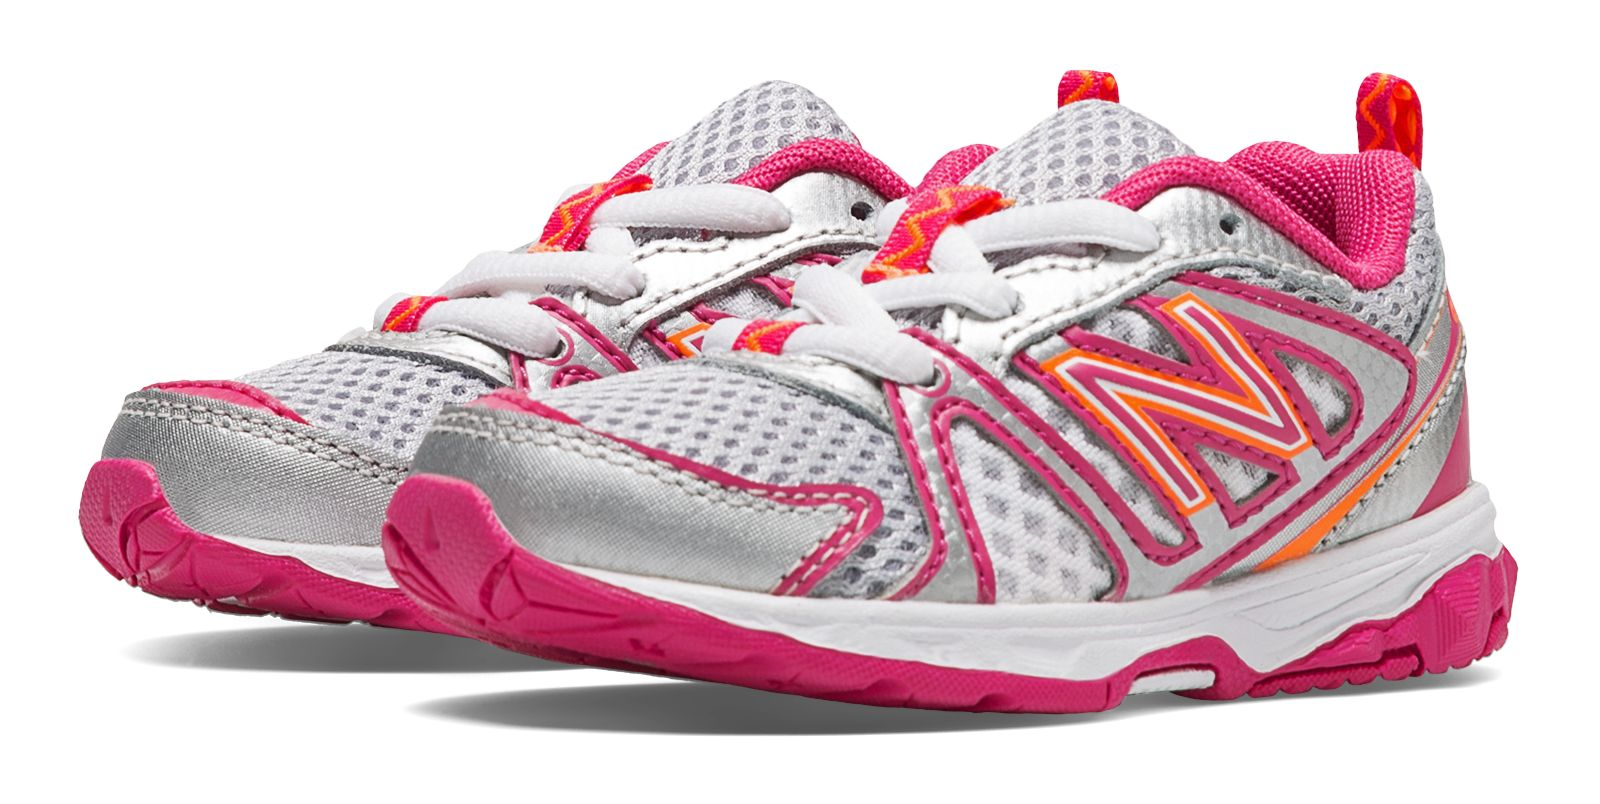 New Balance Infant Girls 696 Shoes Pink